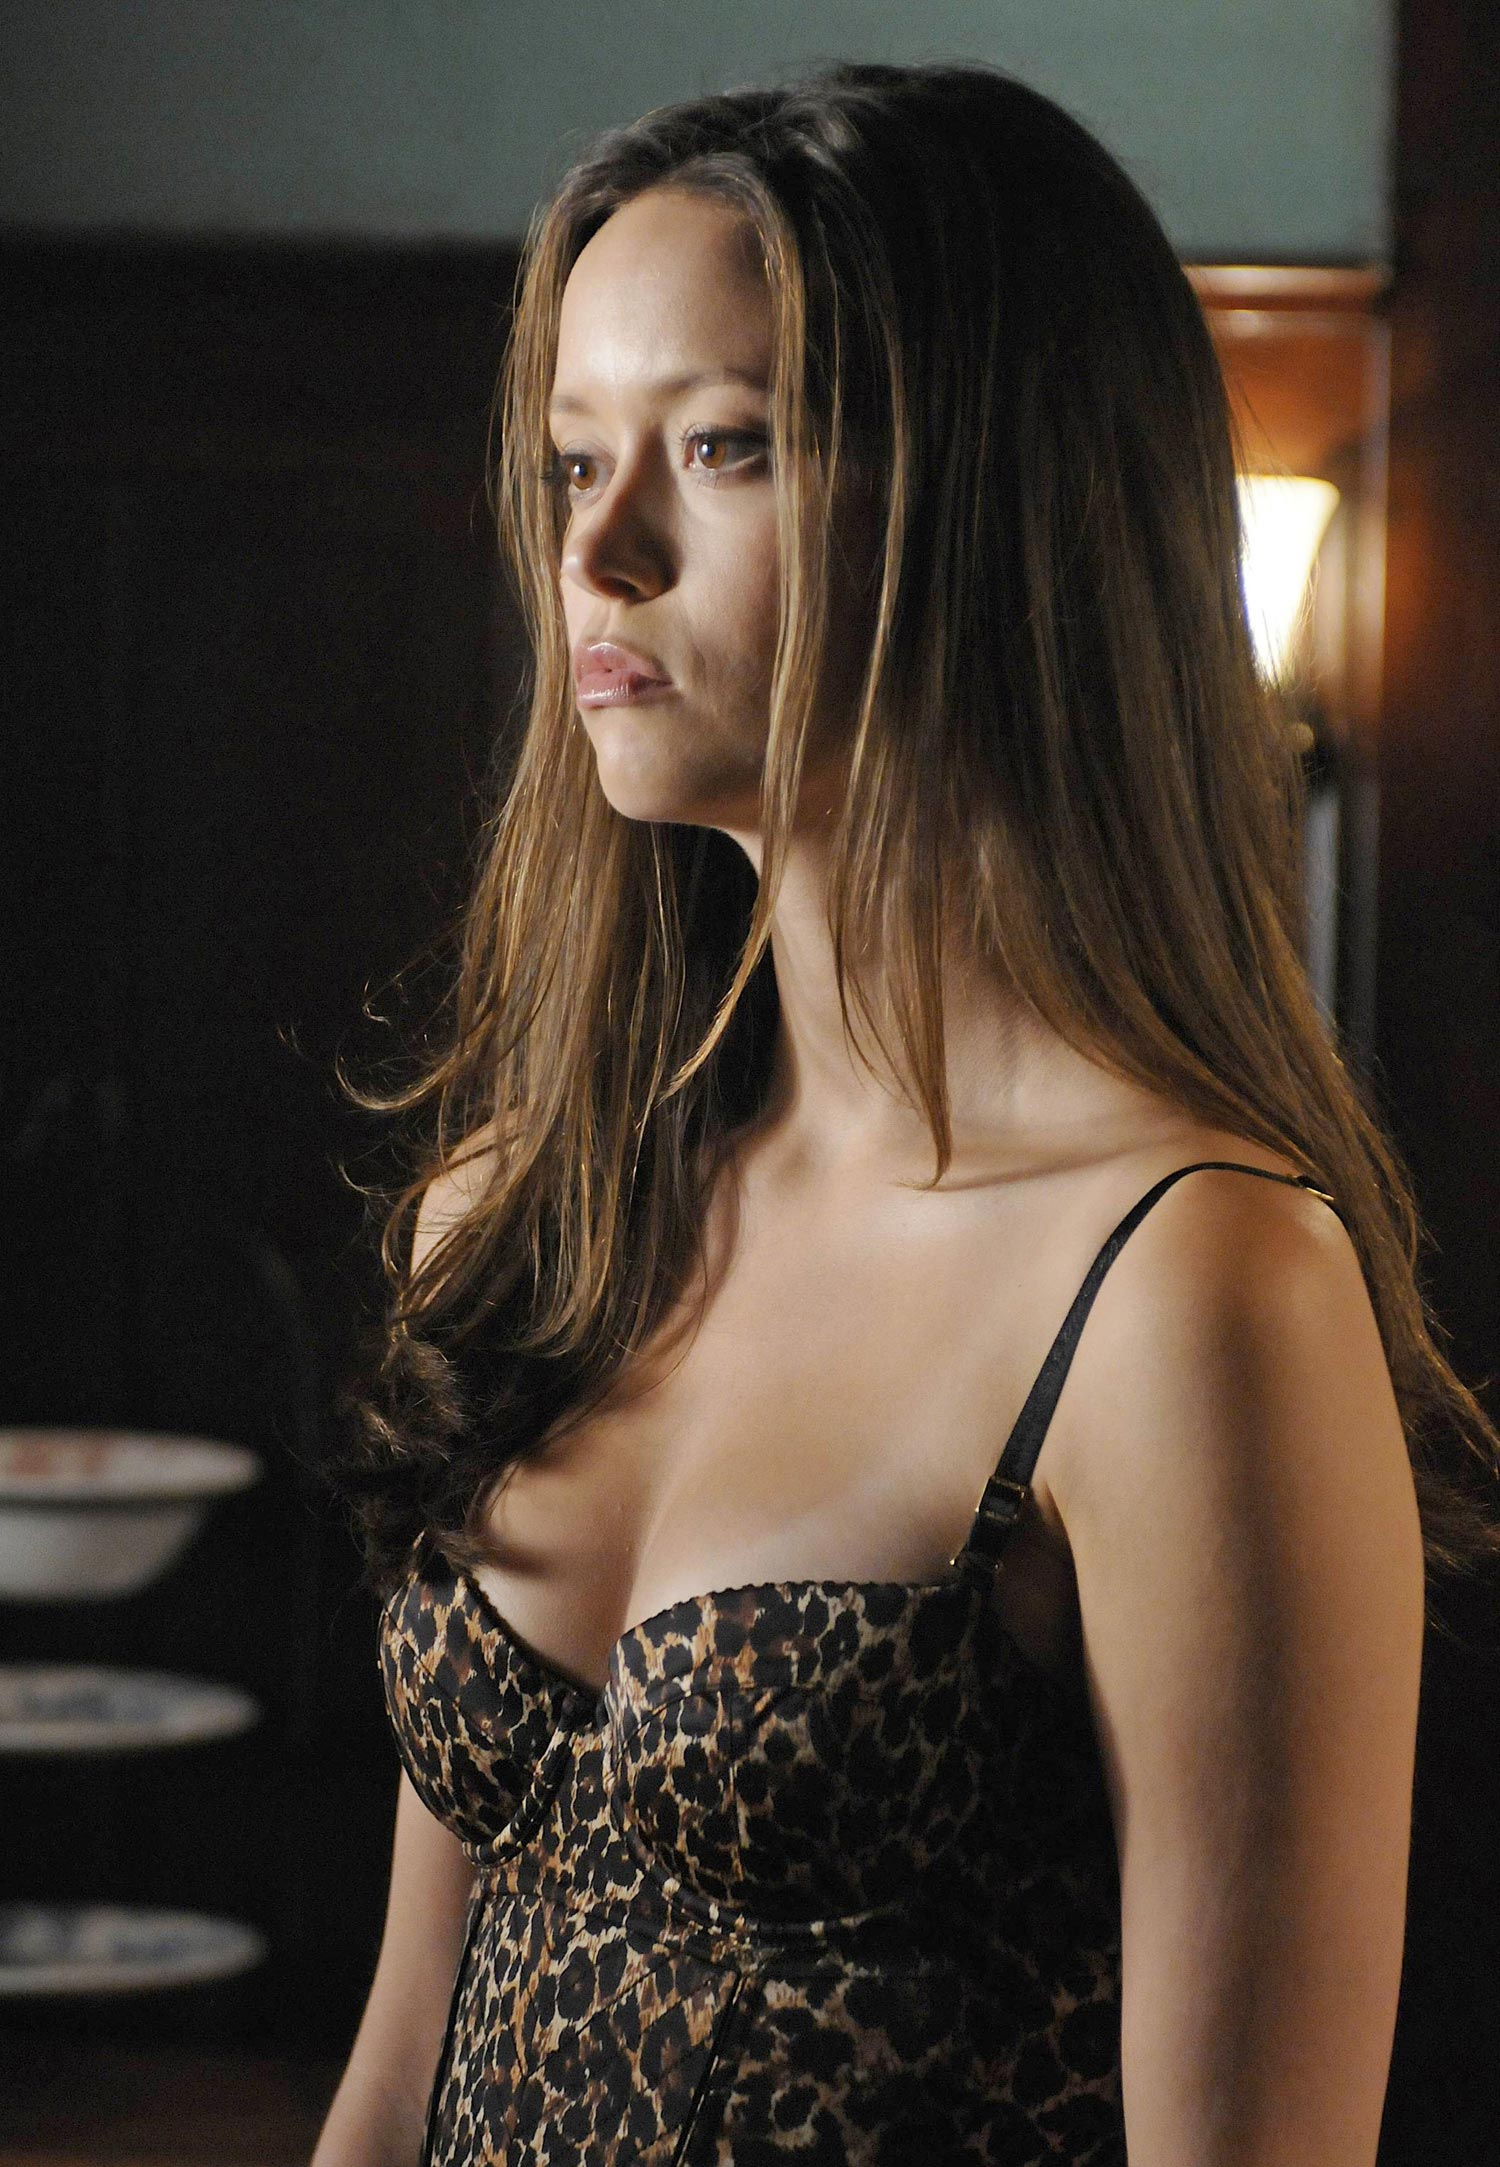 Summer Glau nude (61 foto and video), Topless, Cleavage, Selfie, bra 2006